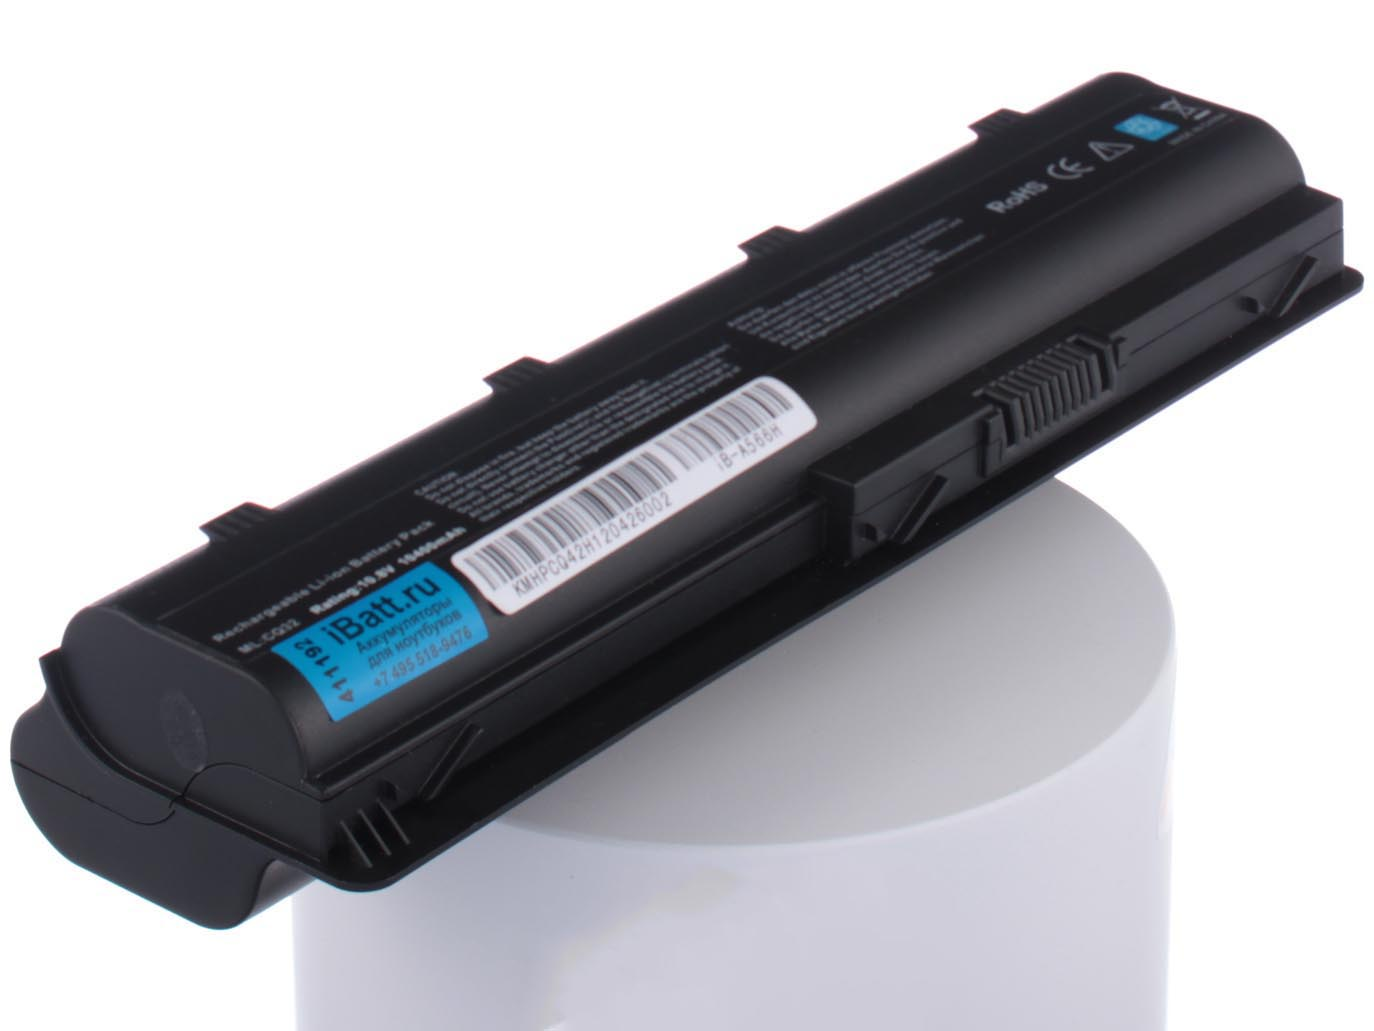 Аккумулятор для ноутбука iBatt для HP-Compaq Pavilion g7-1254sr, Pavilion g7-1255dx, Pavilion g7-2000so, Pavilion g7-2117sr, Pavilion g7-2160er, Pavilion g7-2160sf, Pavilion g7-2326er, Pavilion g7-2328sr, Presario CQ56-104ER 650199 001 for hp pavilion g7 g4 laptop motherboard hm65 ddr3 free shipping 100